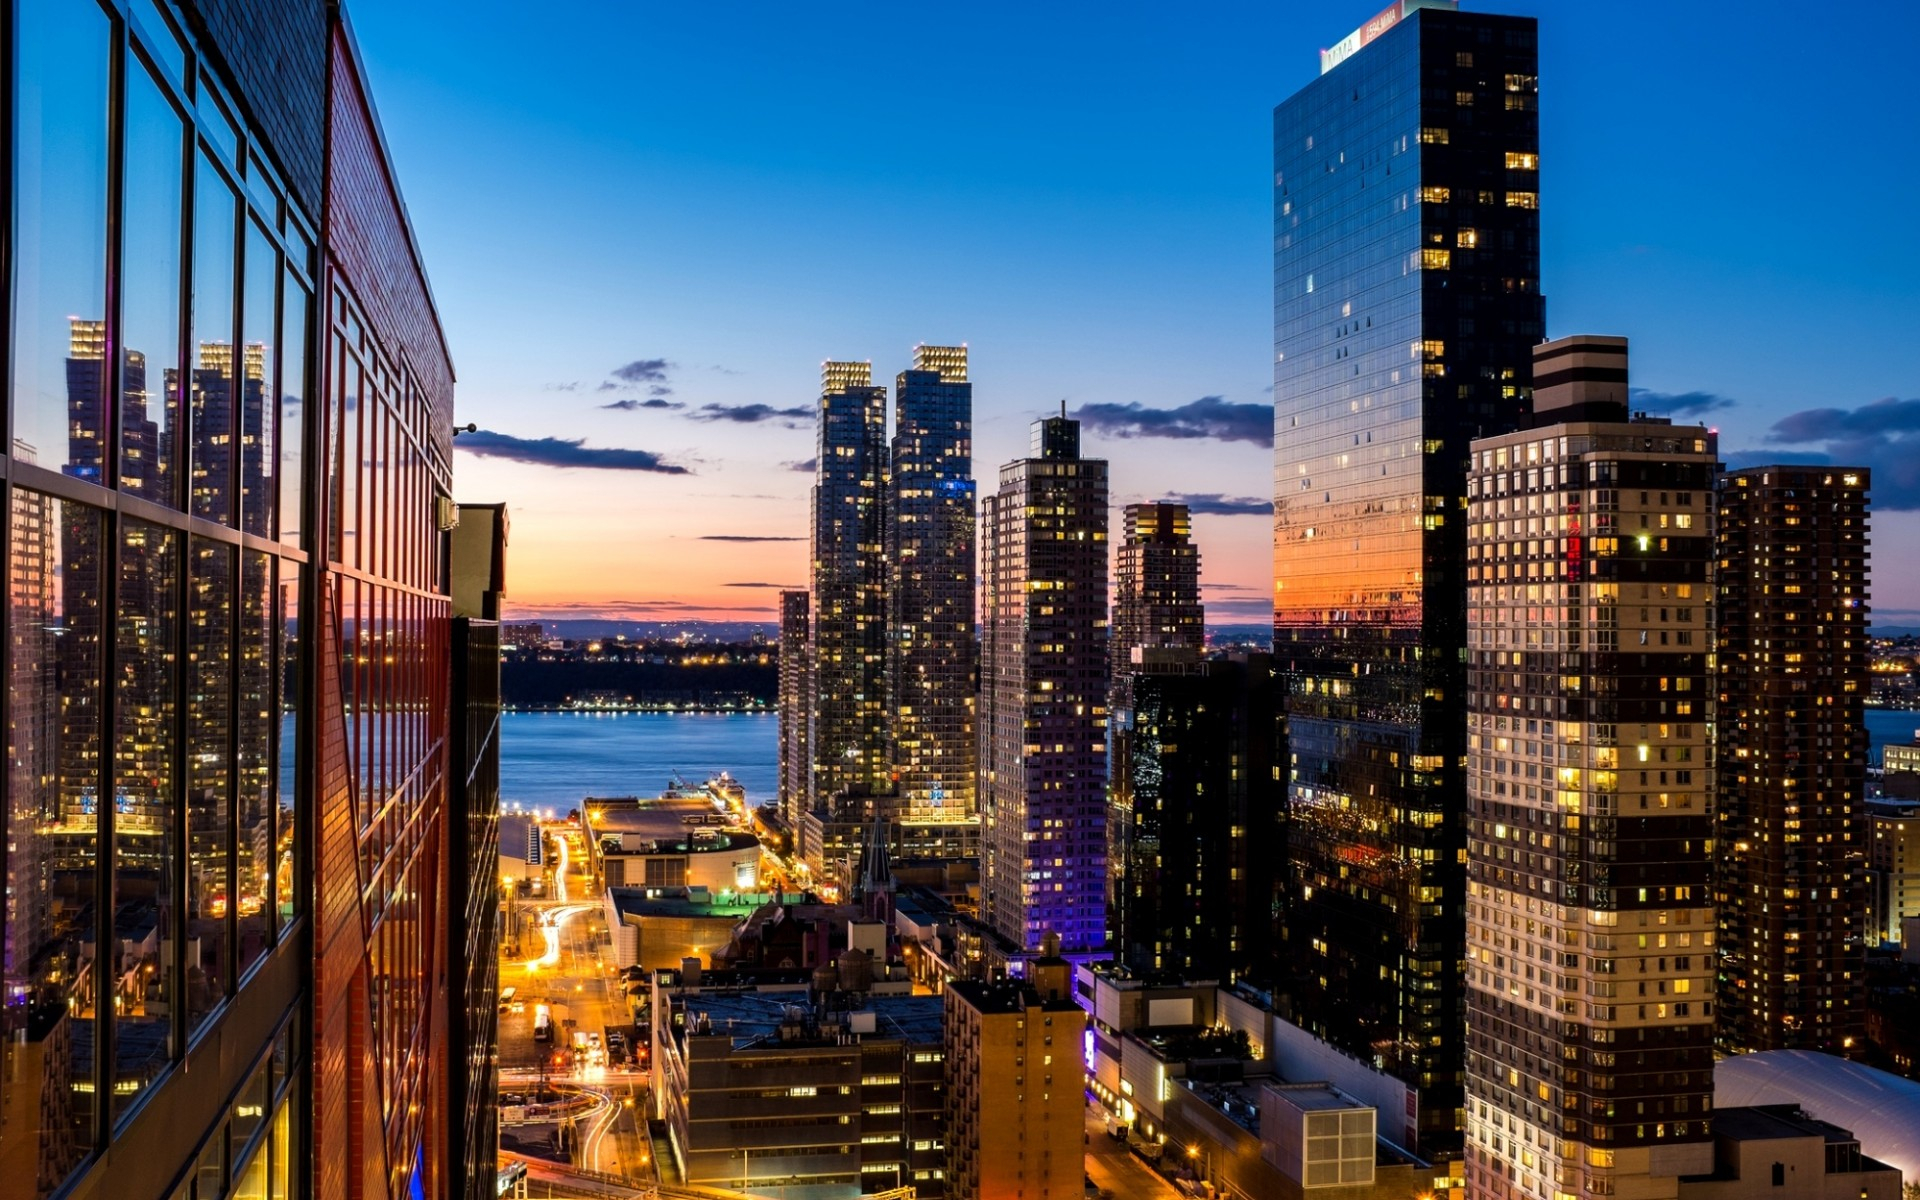 Cityscape New York At Evening Wallpaper Wallpaper with 1920x1200 1920x1200